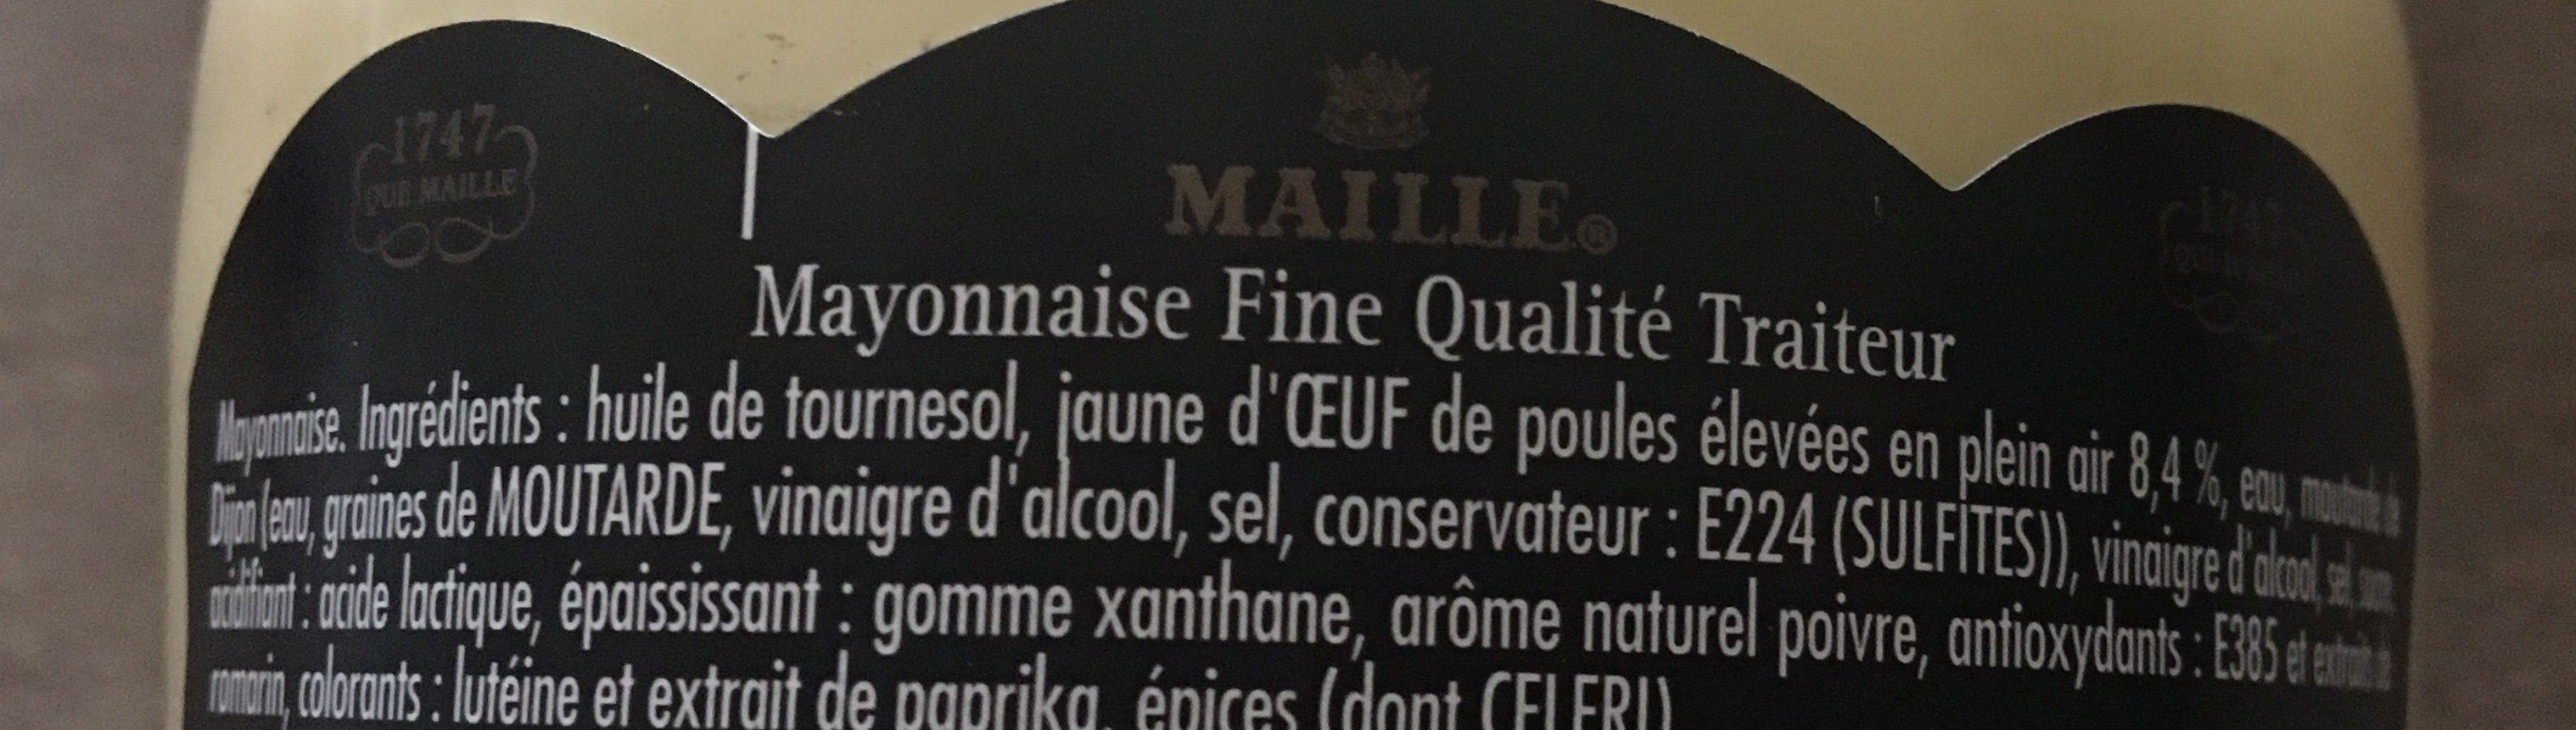 Maille Mayonnaise Fine Qualité Traiteur Bocal - Ingredients - fr